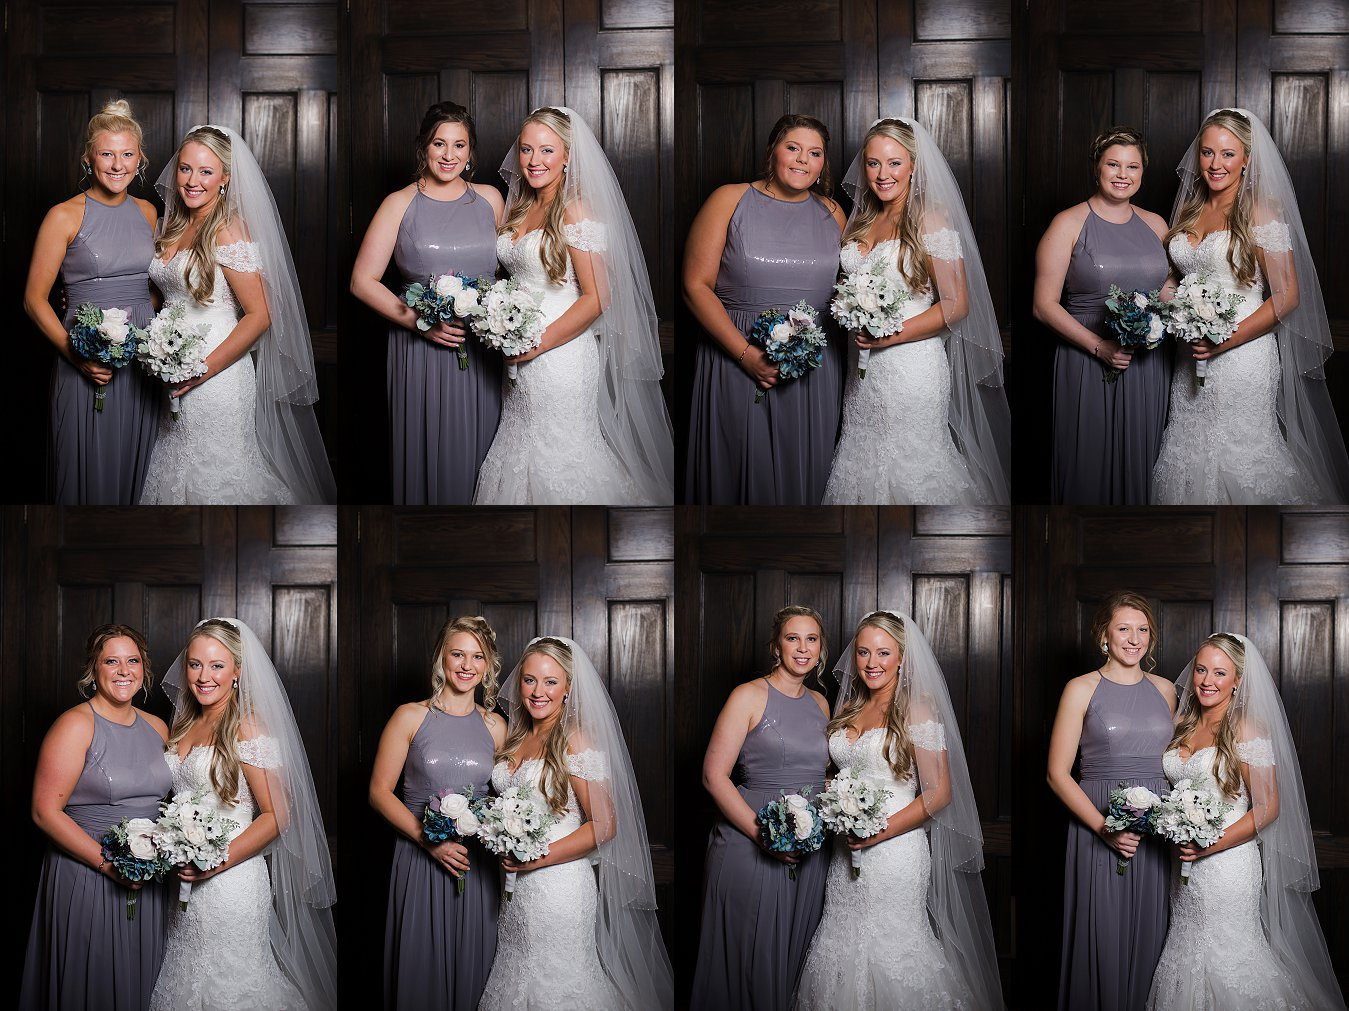 Wedding-Photographers-Bloomsburg_0720.jpg